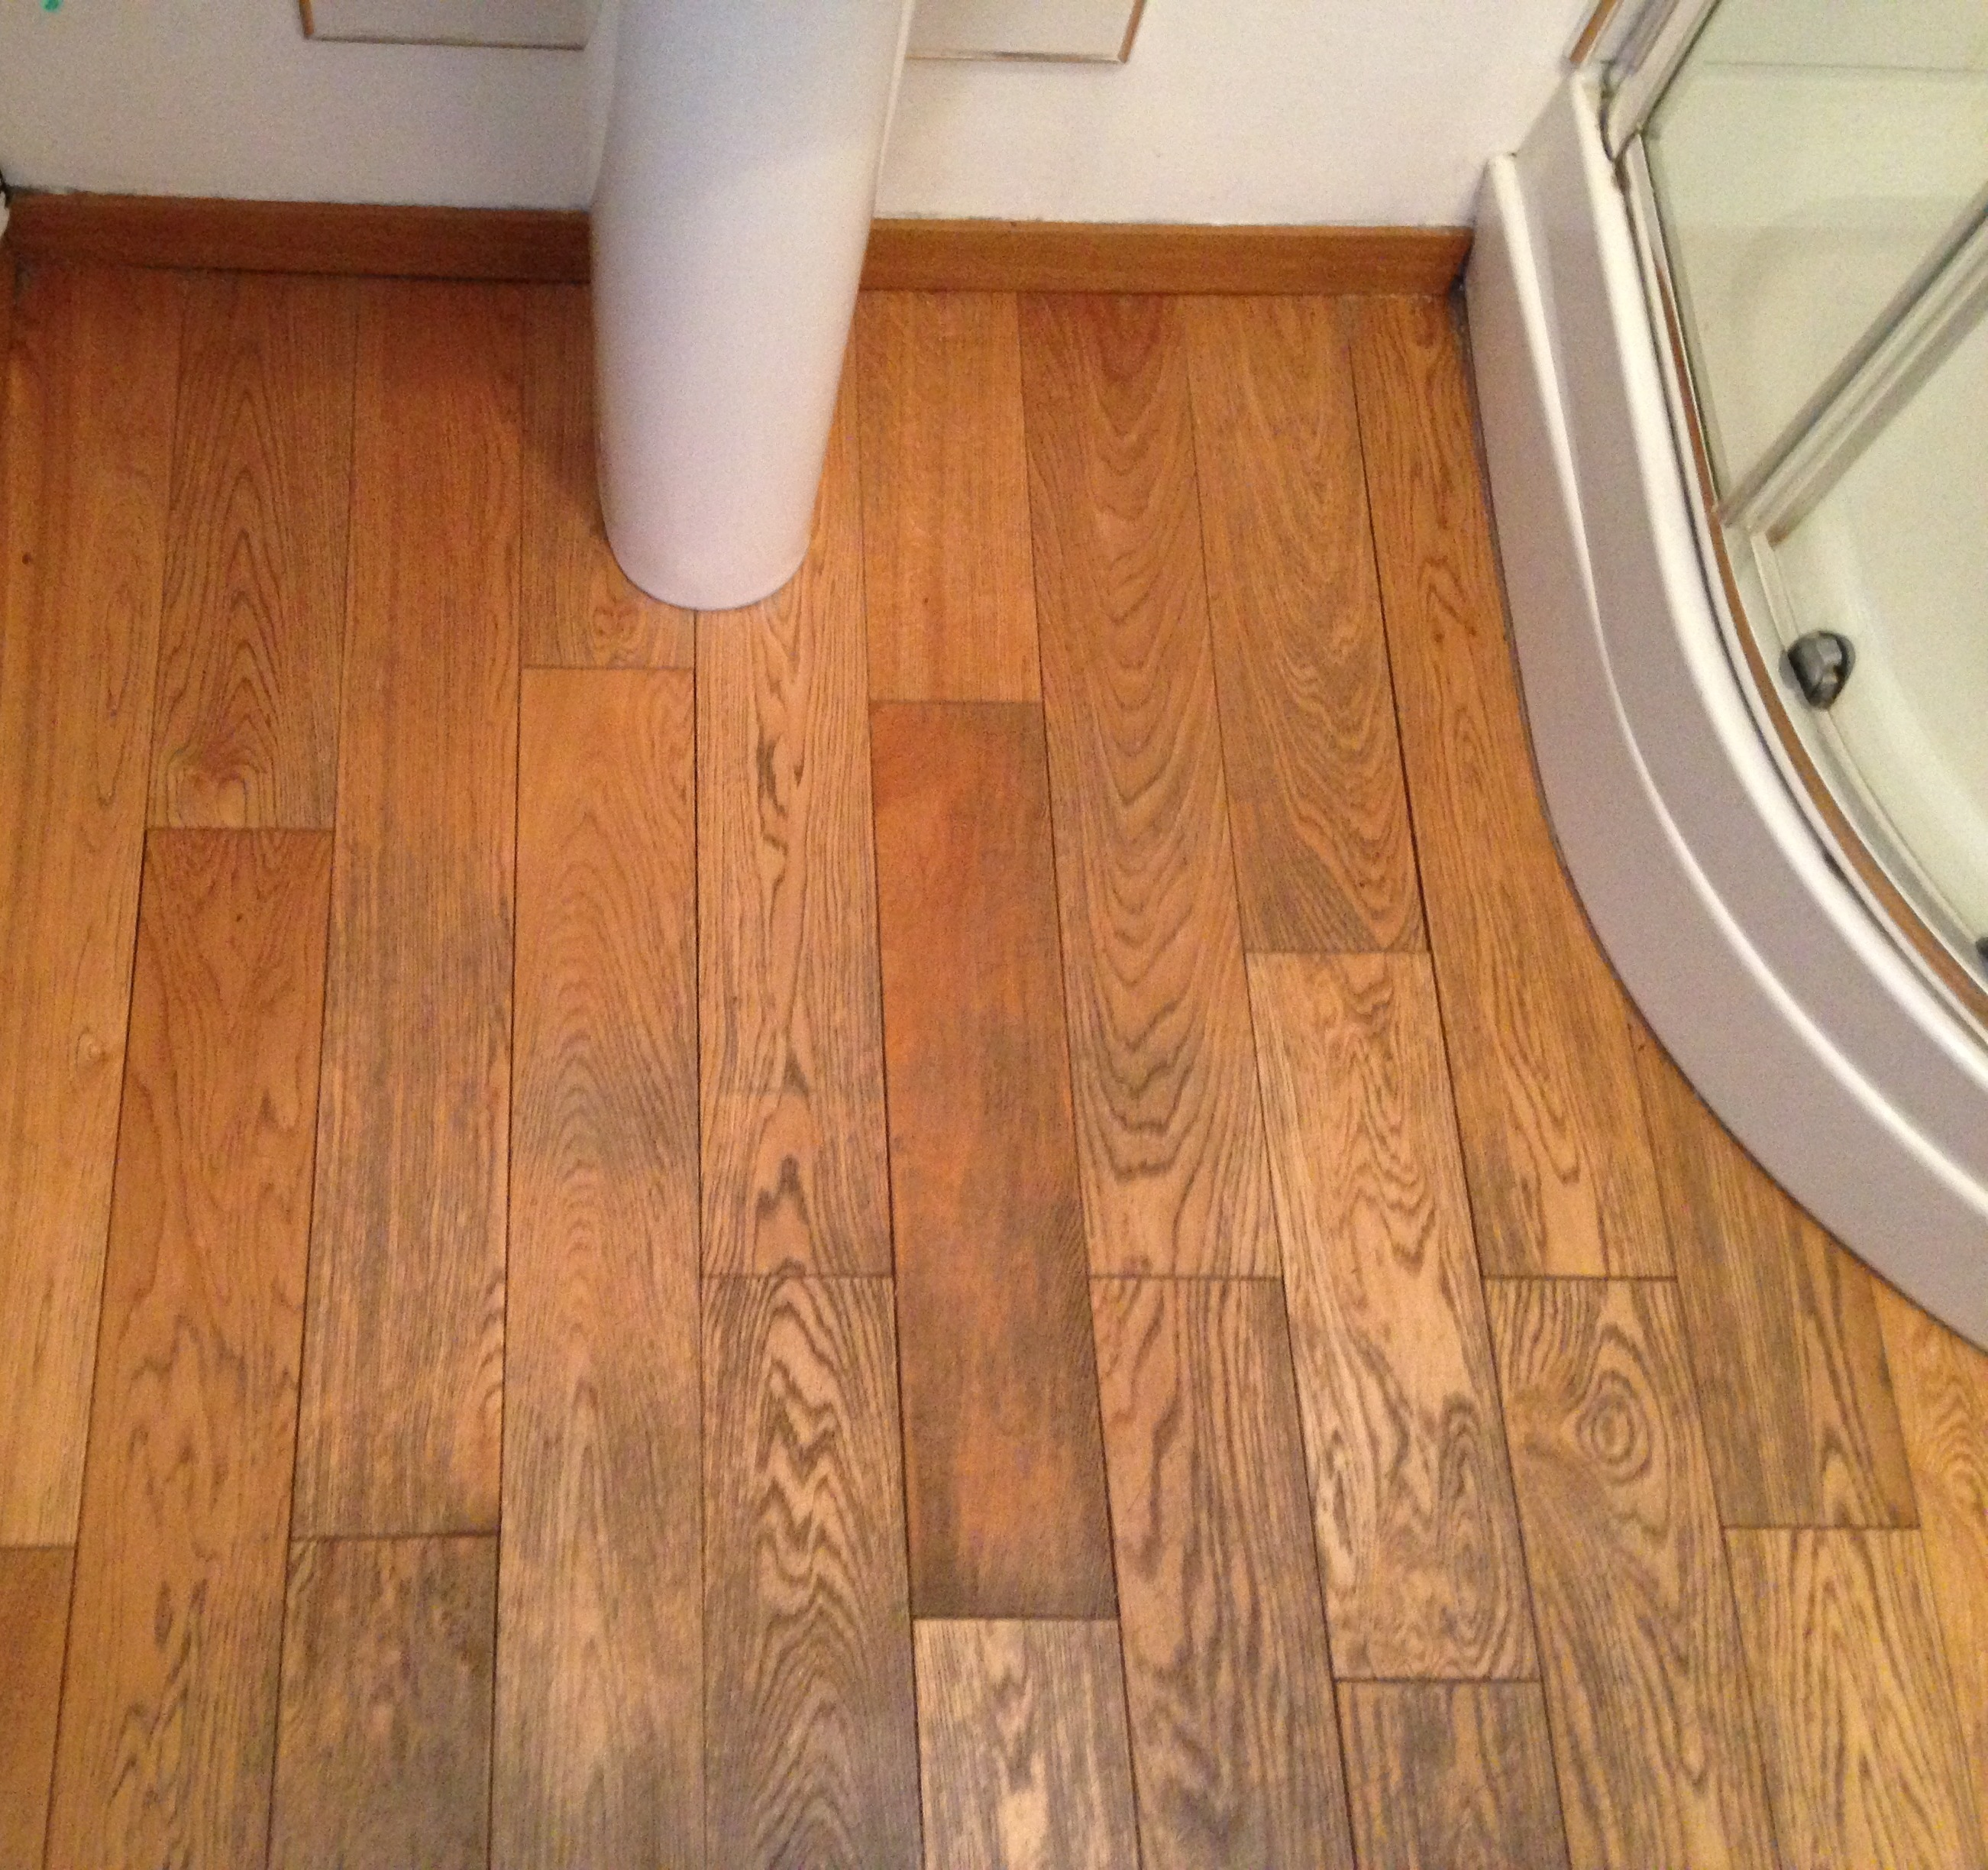 hardwood floors cleaner to floor naturally ways the flooring wood clean natural lady vinegar